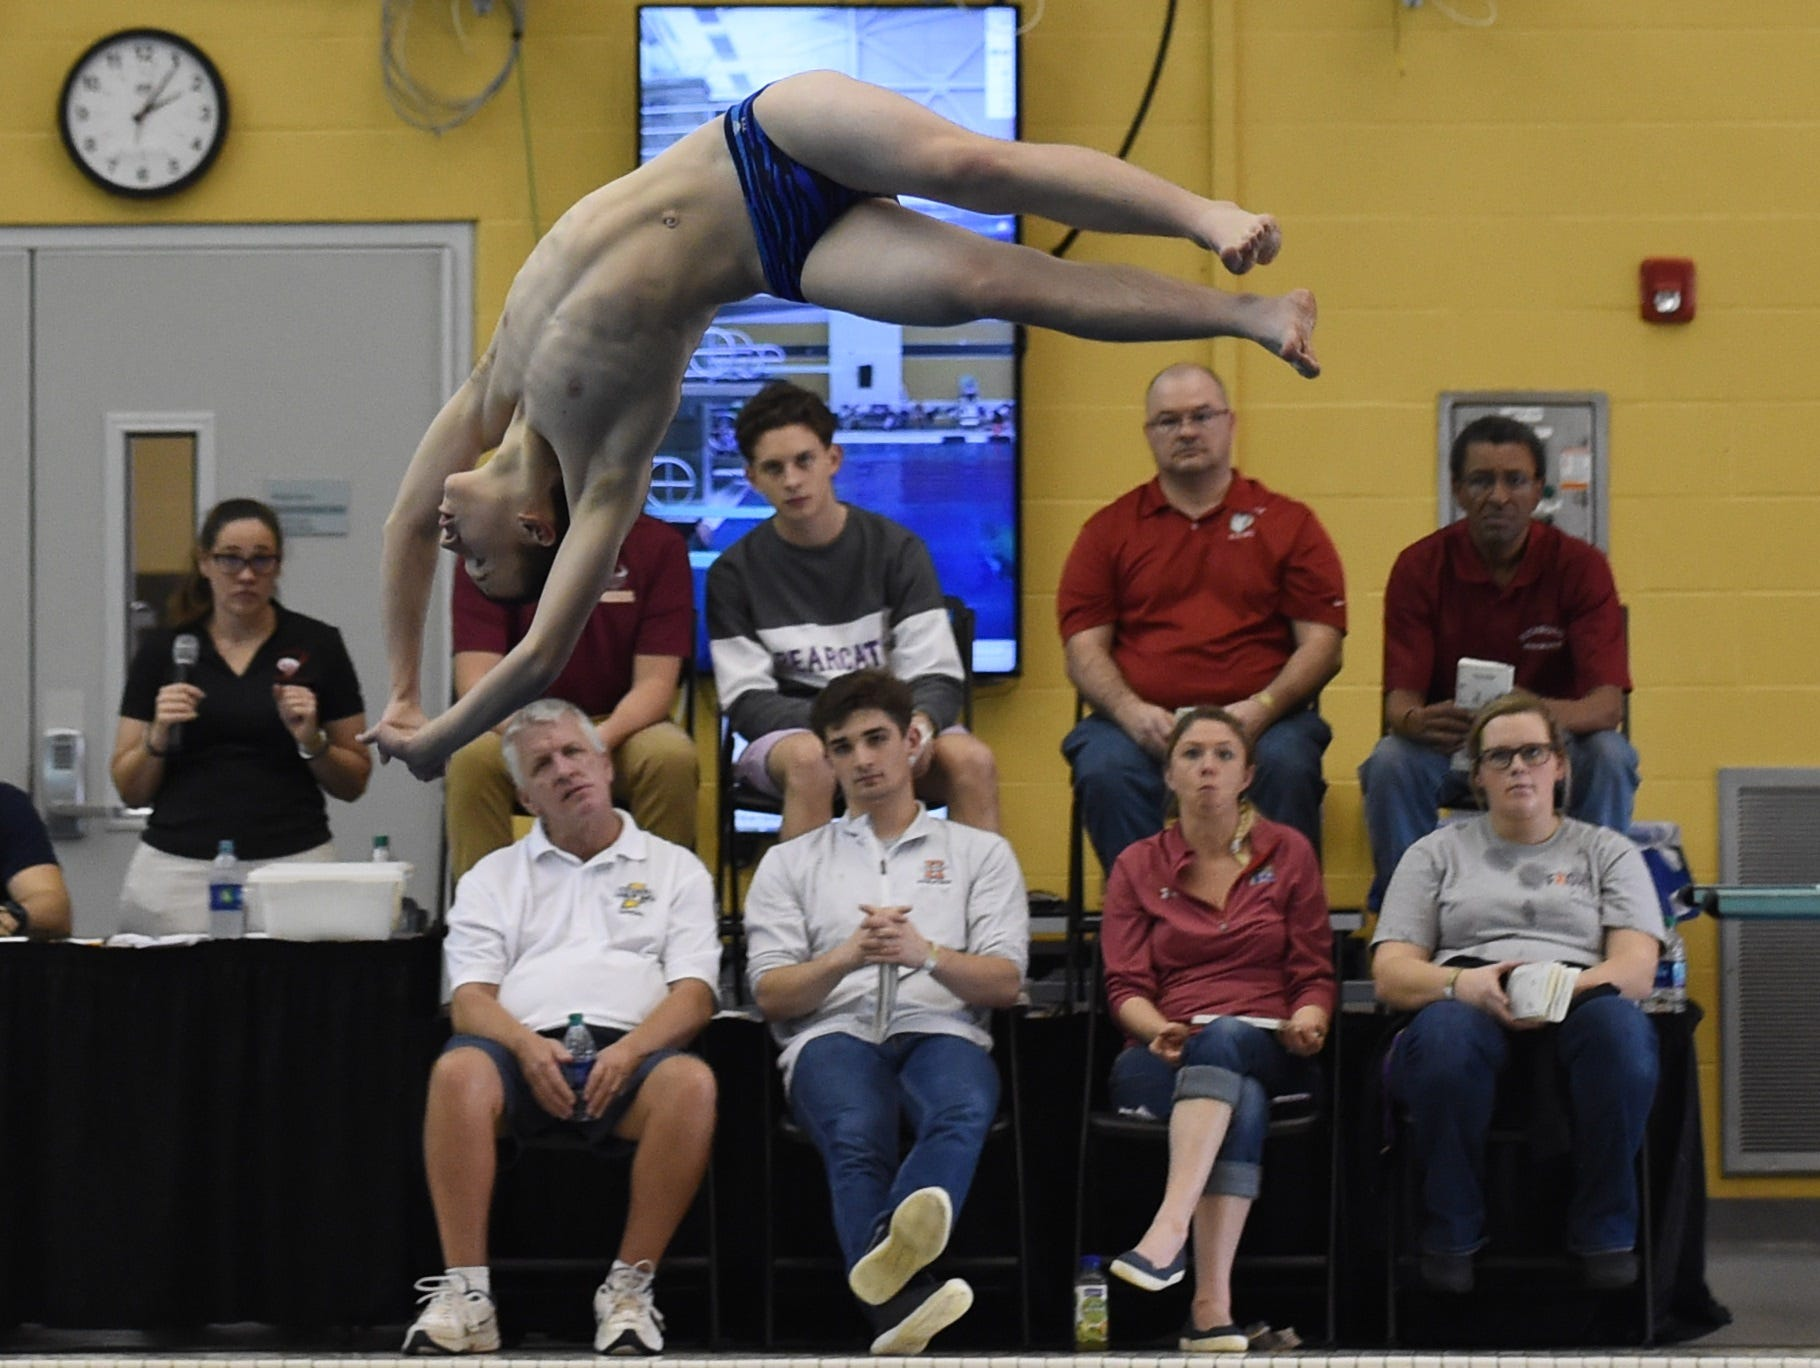 Images from Saturday's North Central Conference Swimming and Diving Championships at Purdue. Logan Buckley.